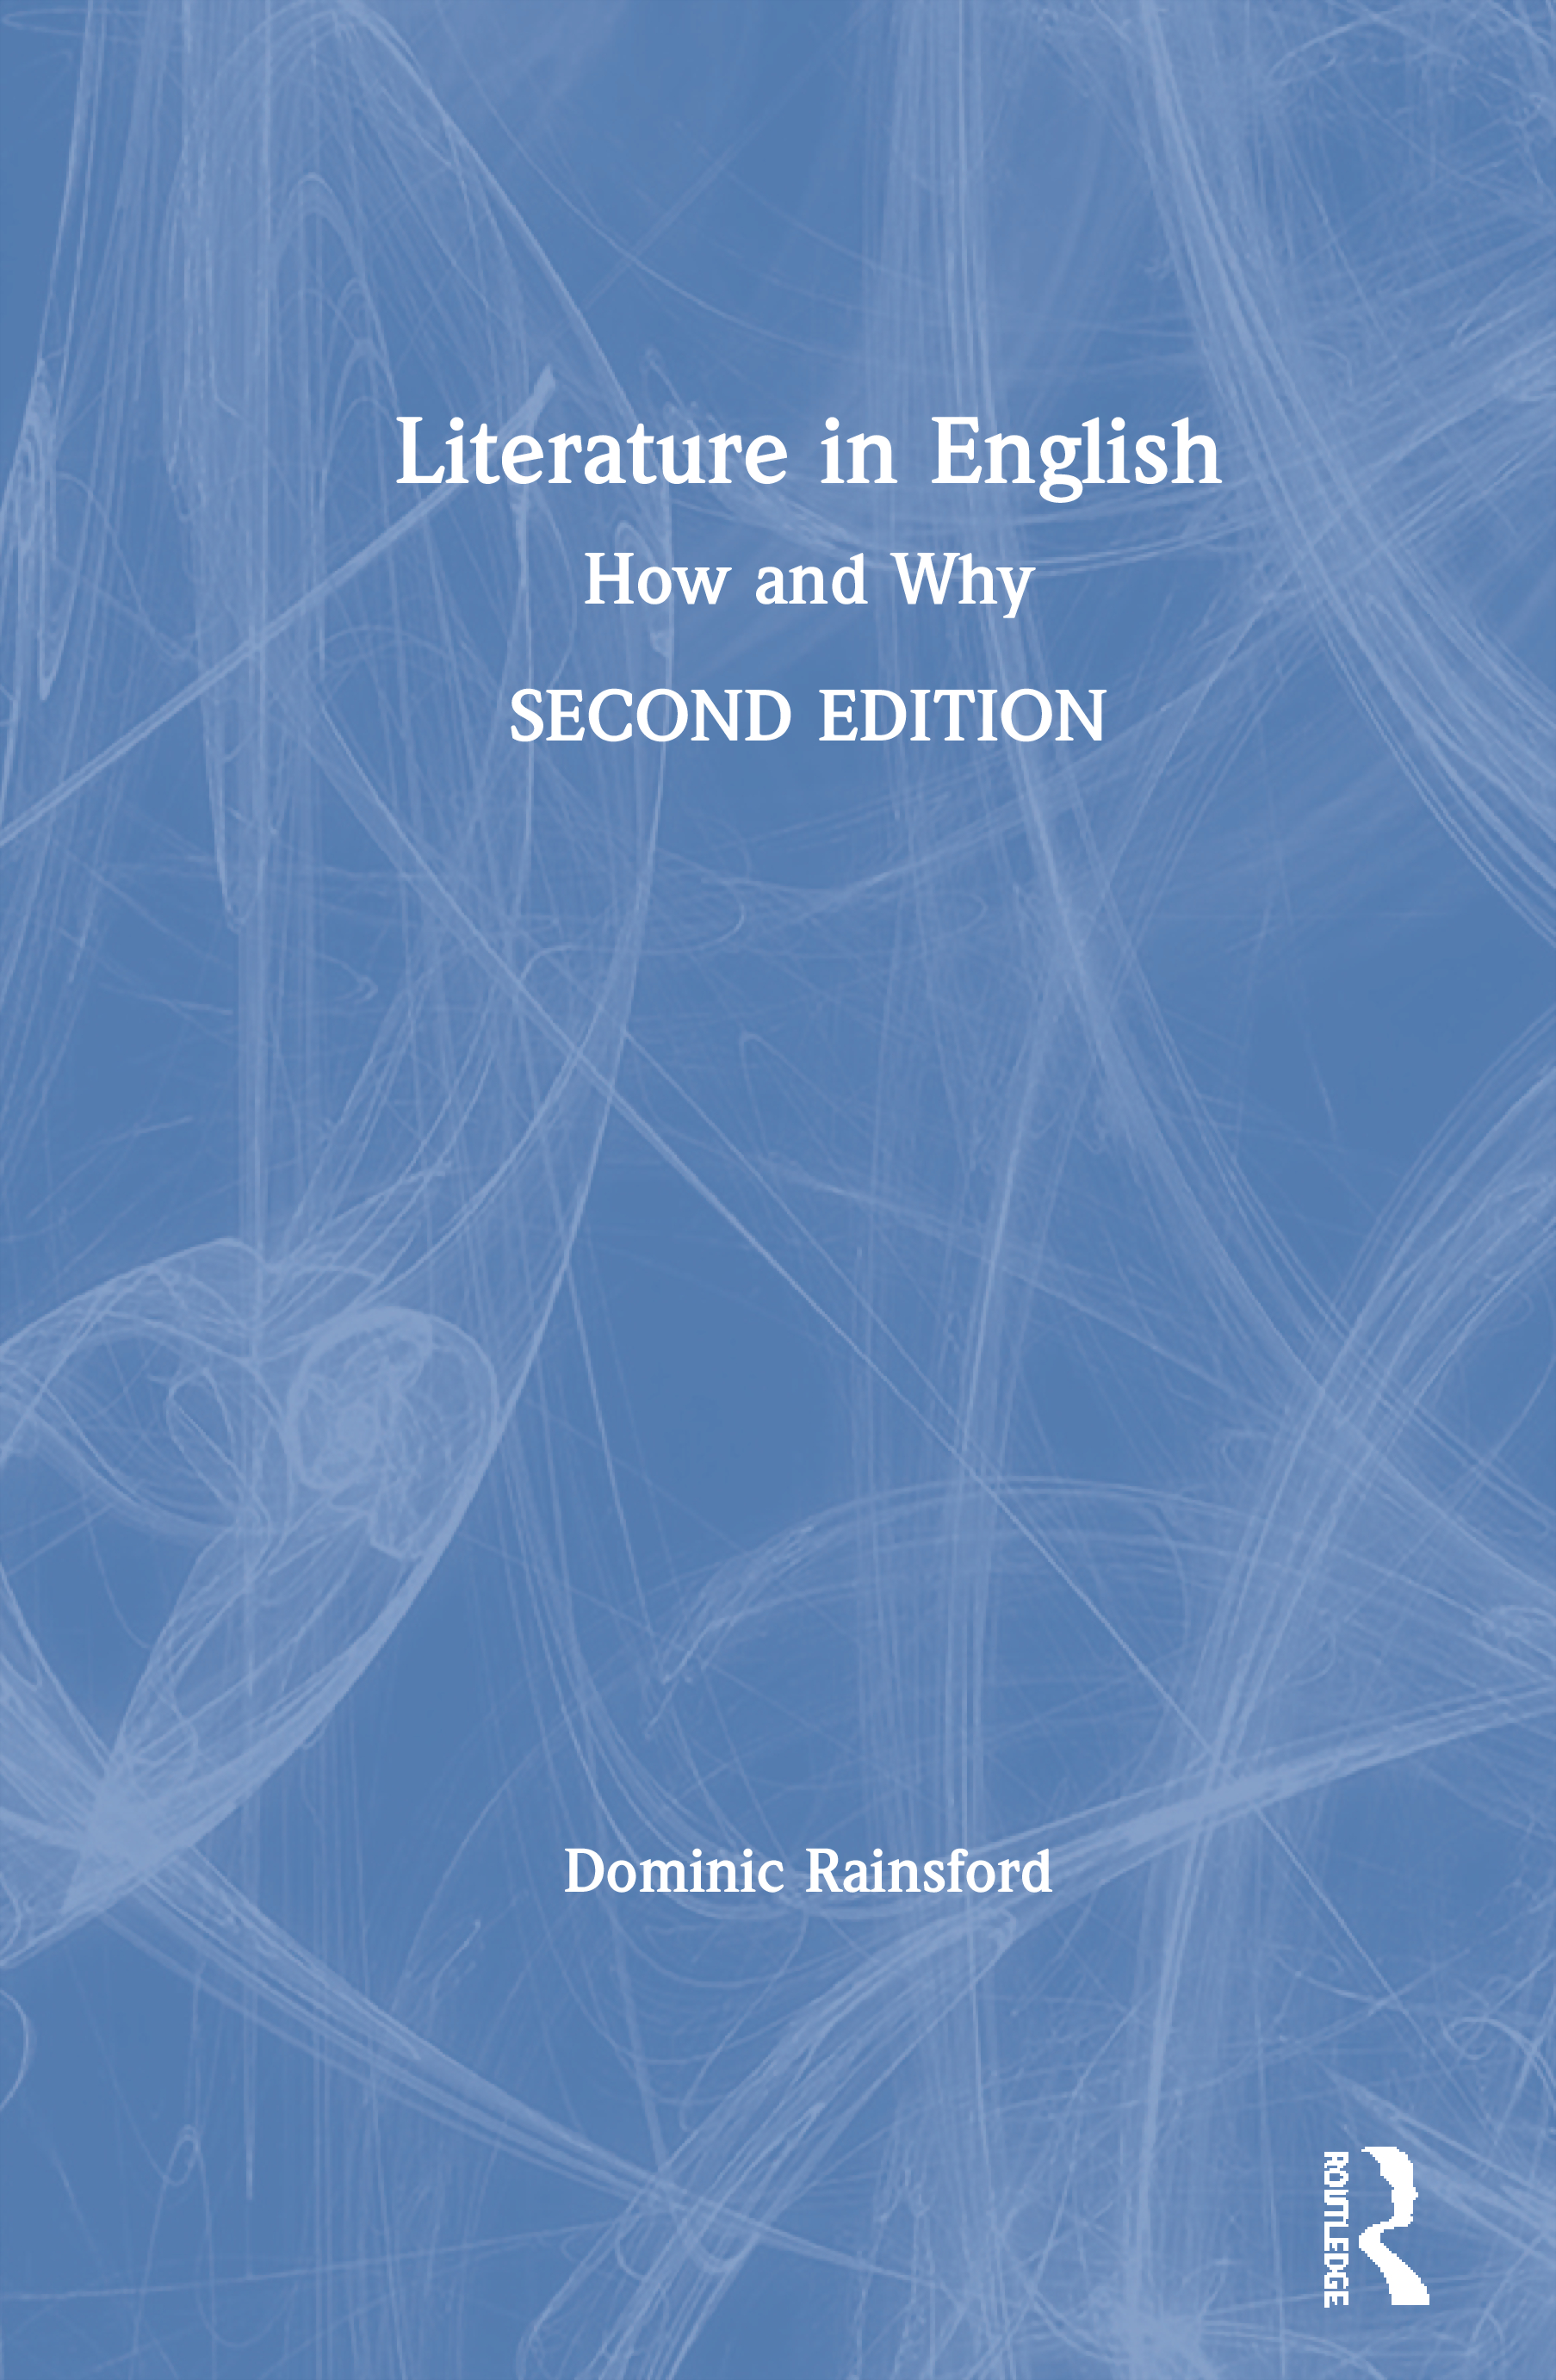 Literature in English: How and Why book cover